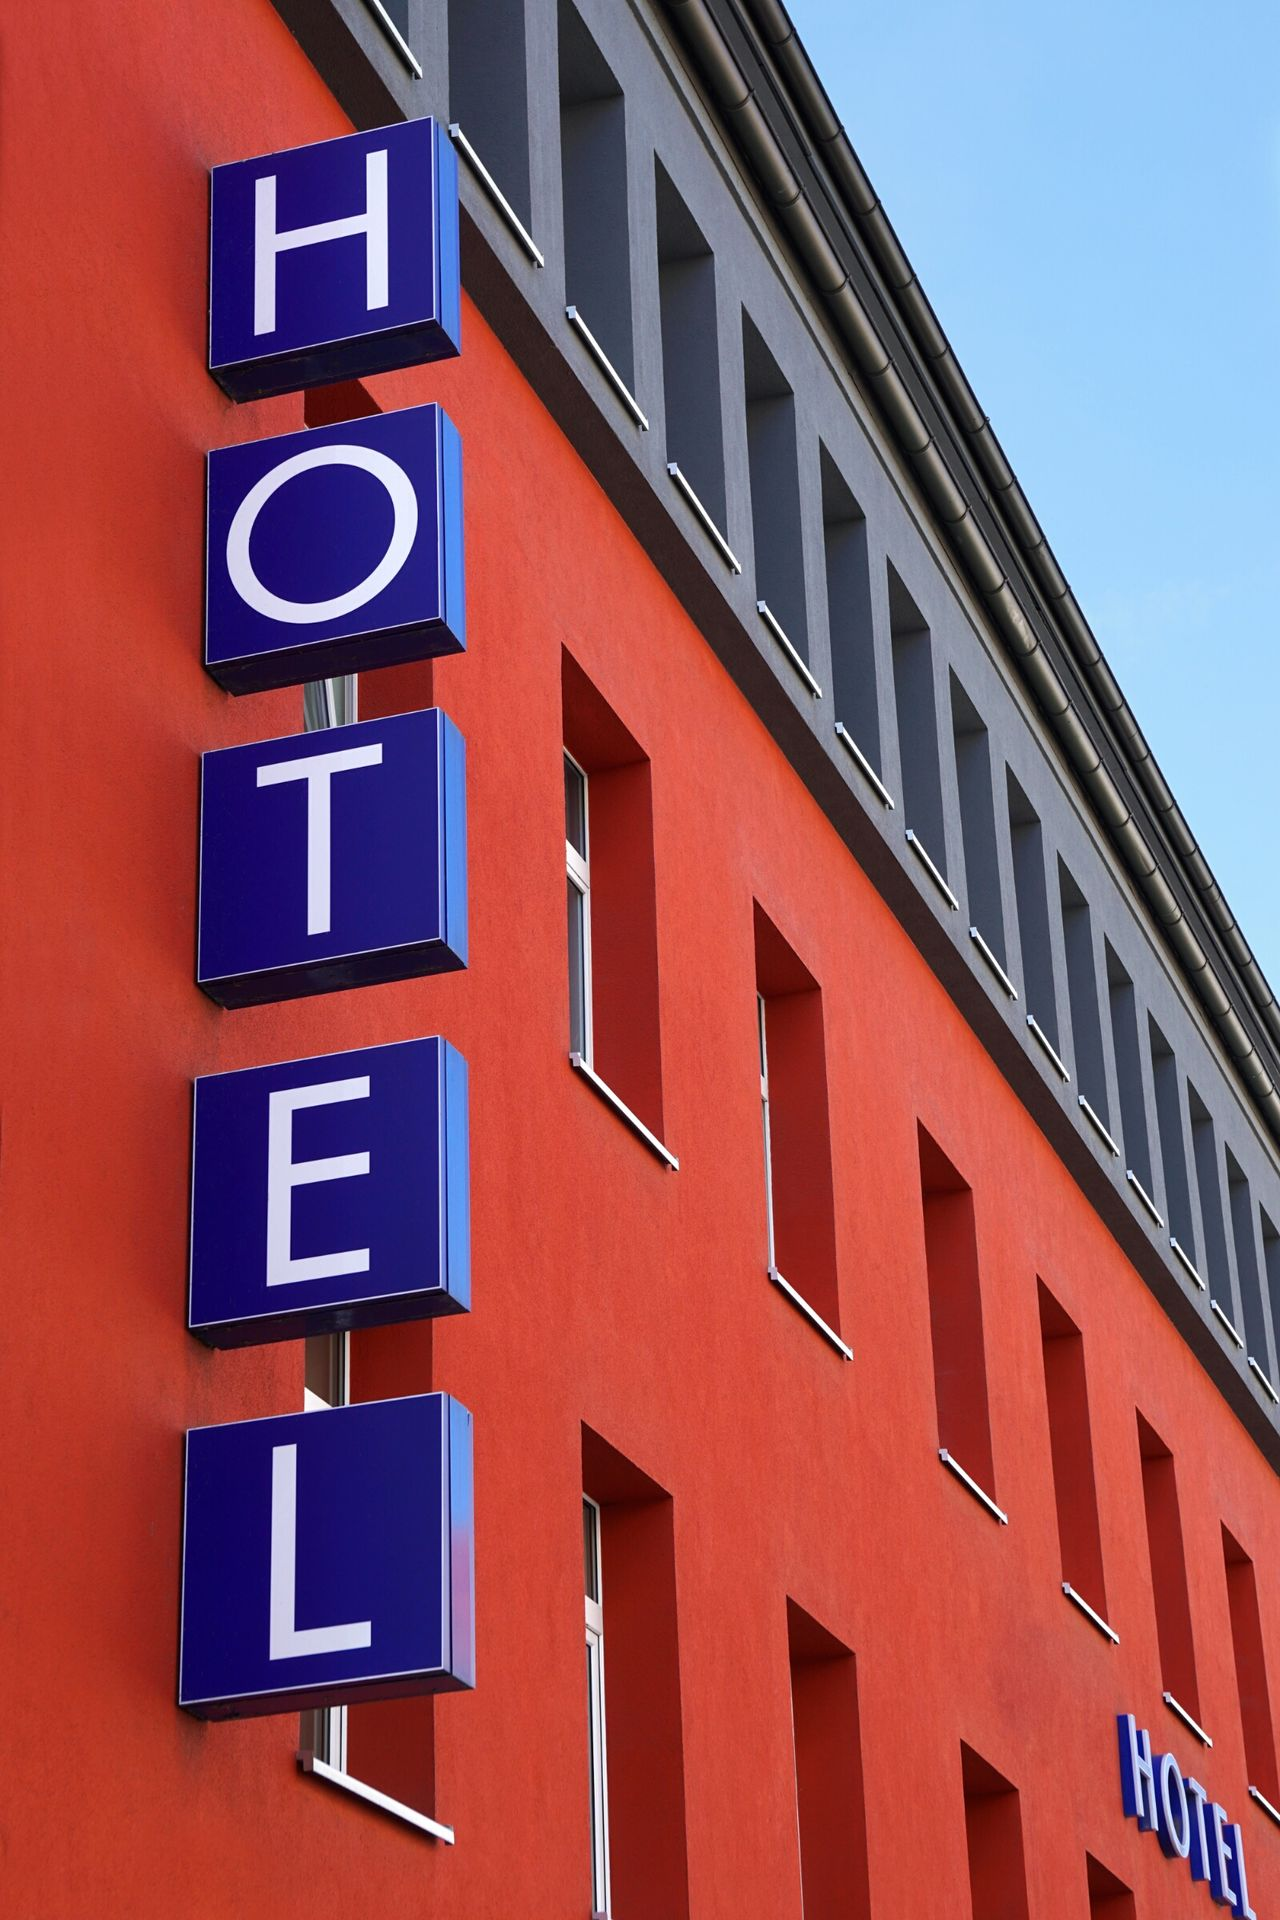 Beautiful stock photos of hotel, architecture, building exterior, built structure, window